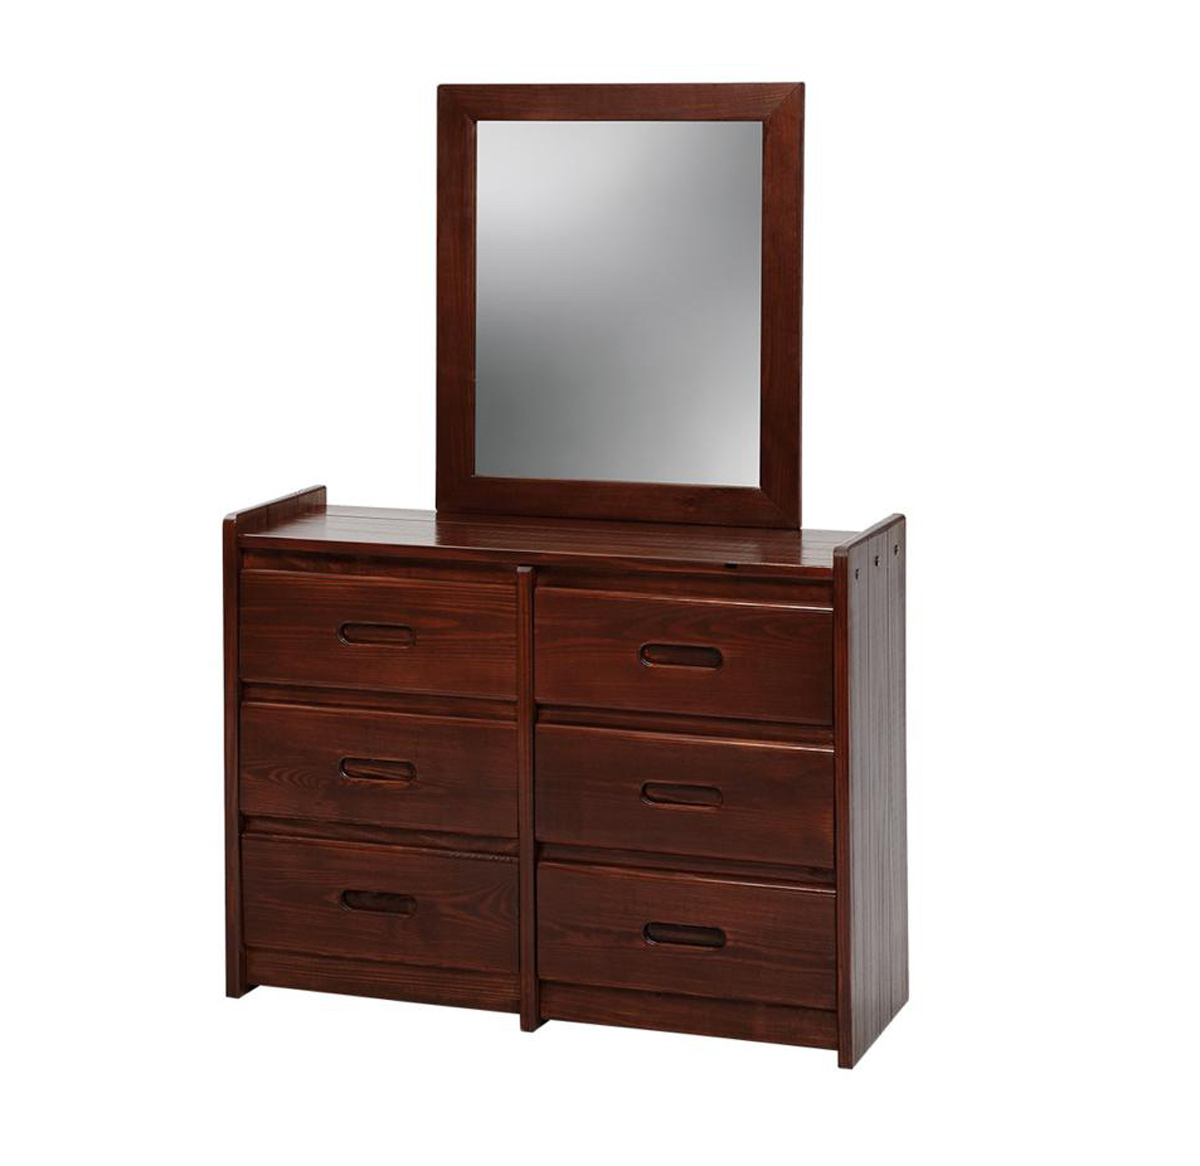 Chelsea Home 360066-011-D 6 Drawer Dresser with Mirror - Dark